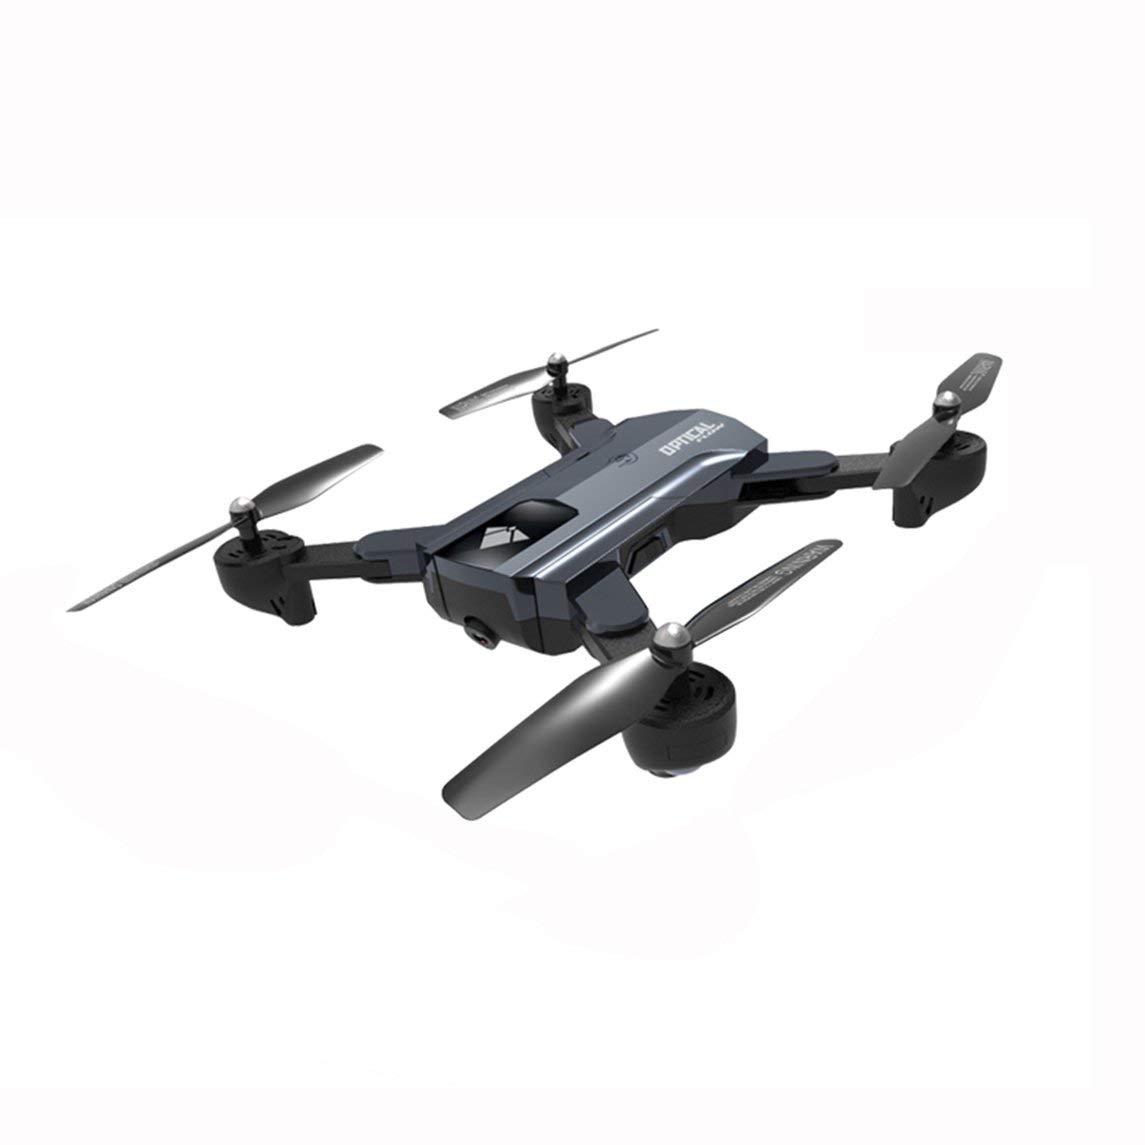 Footprintse F196 Optical Flow Localization Foldable Quadcopter Wi-Fi RC Drone with 2.0MP HD Camera 1100mAh Battery Headless Mode Aircraft